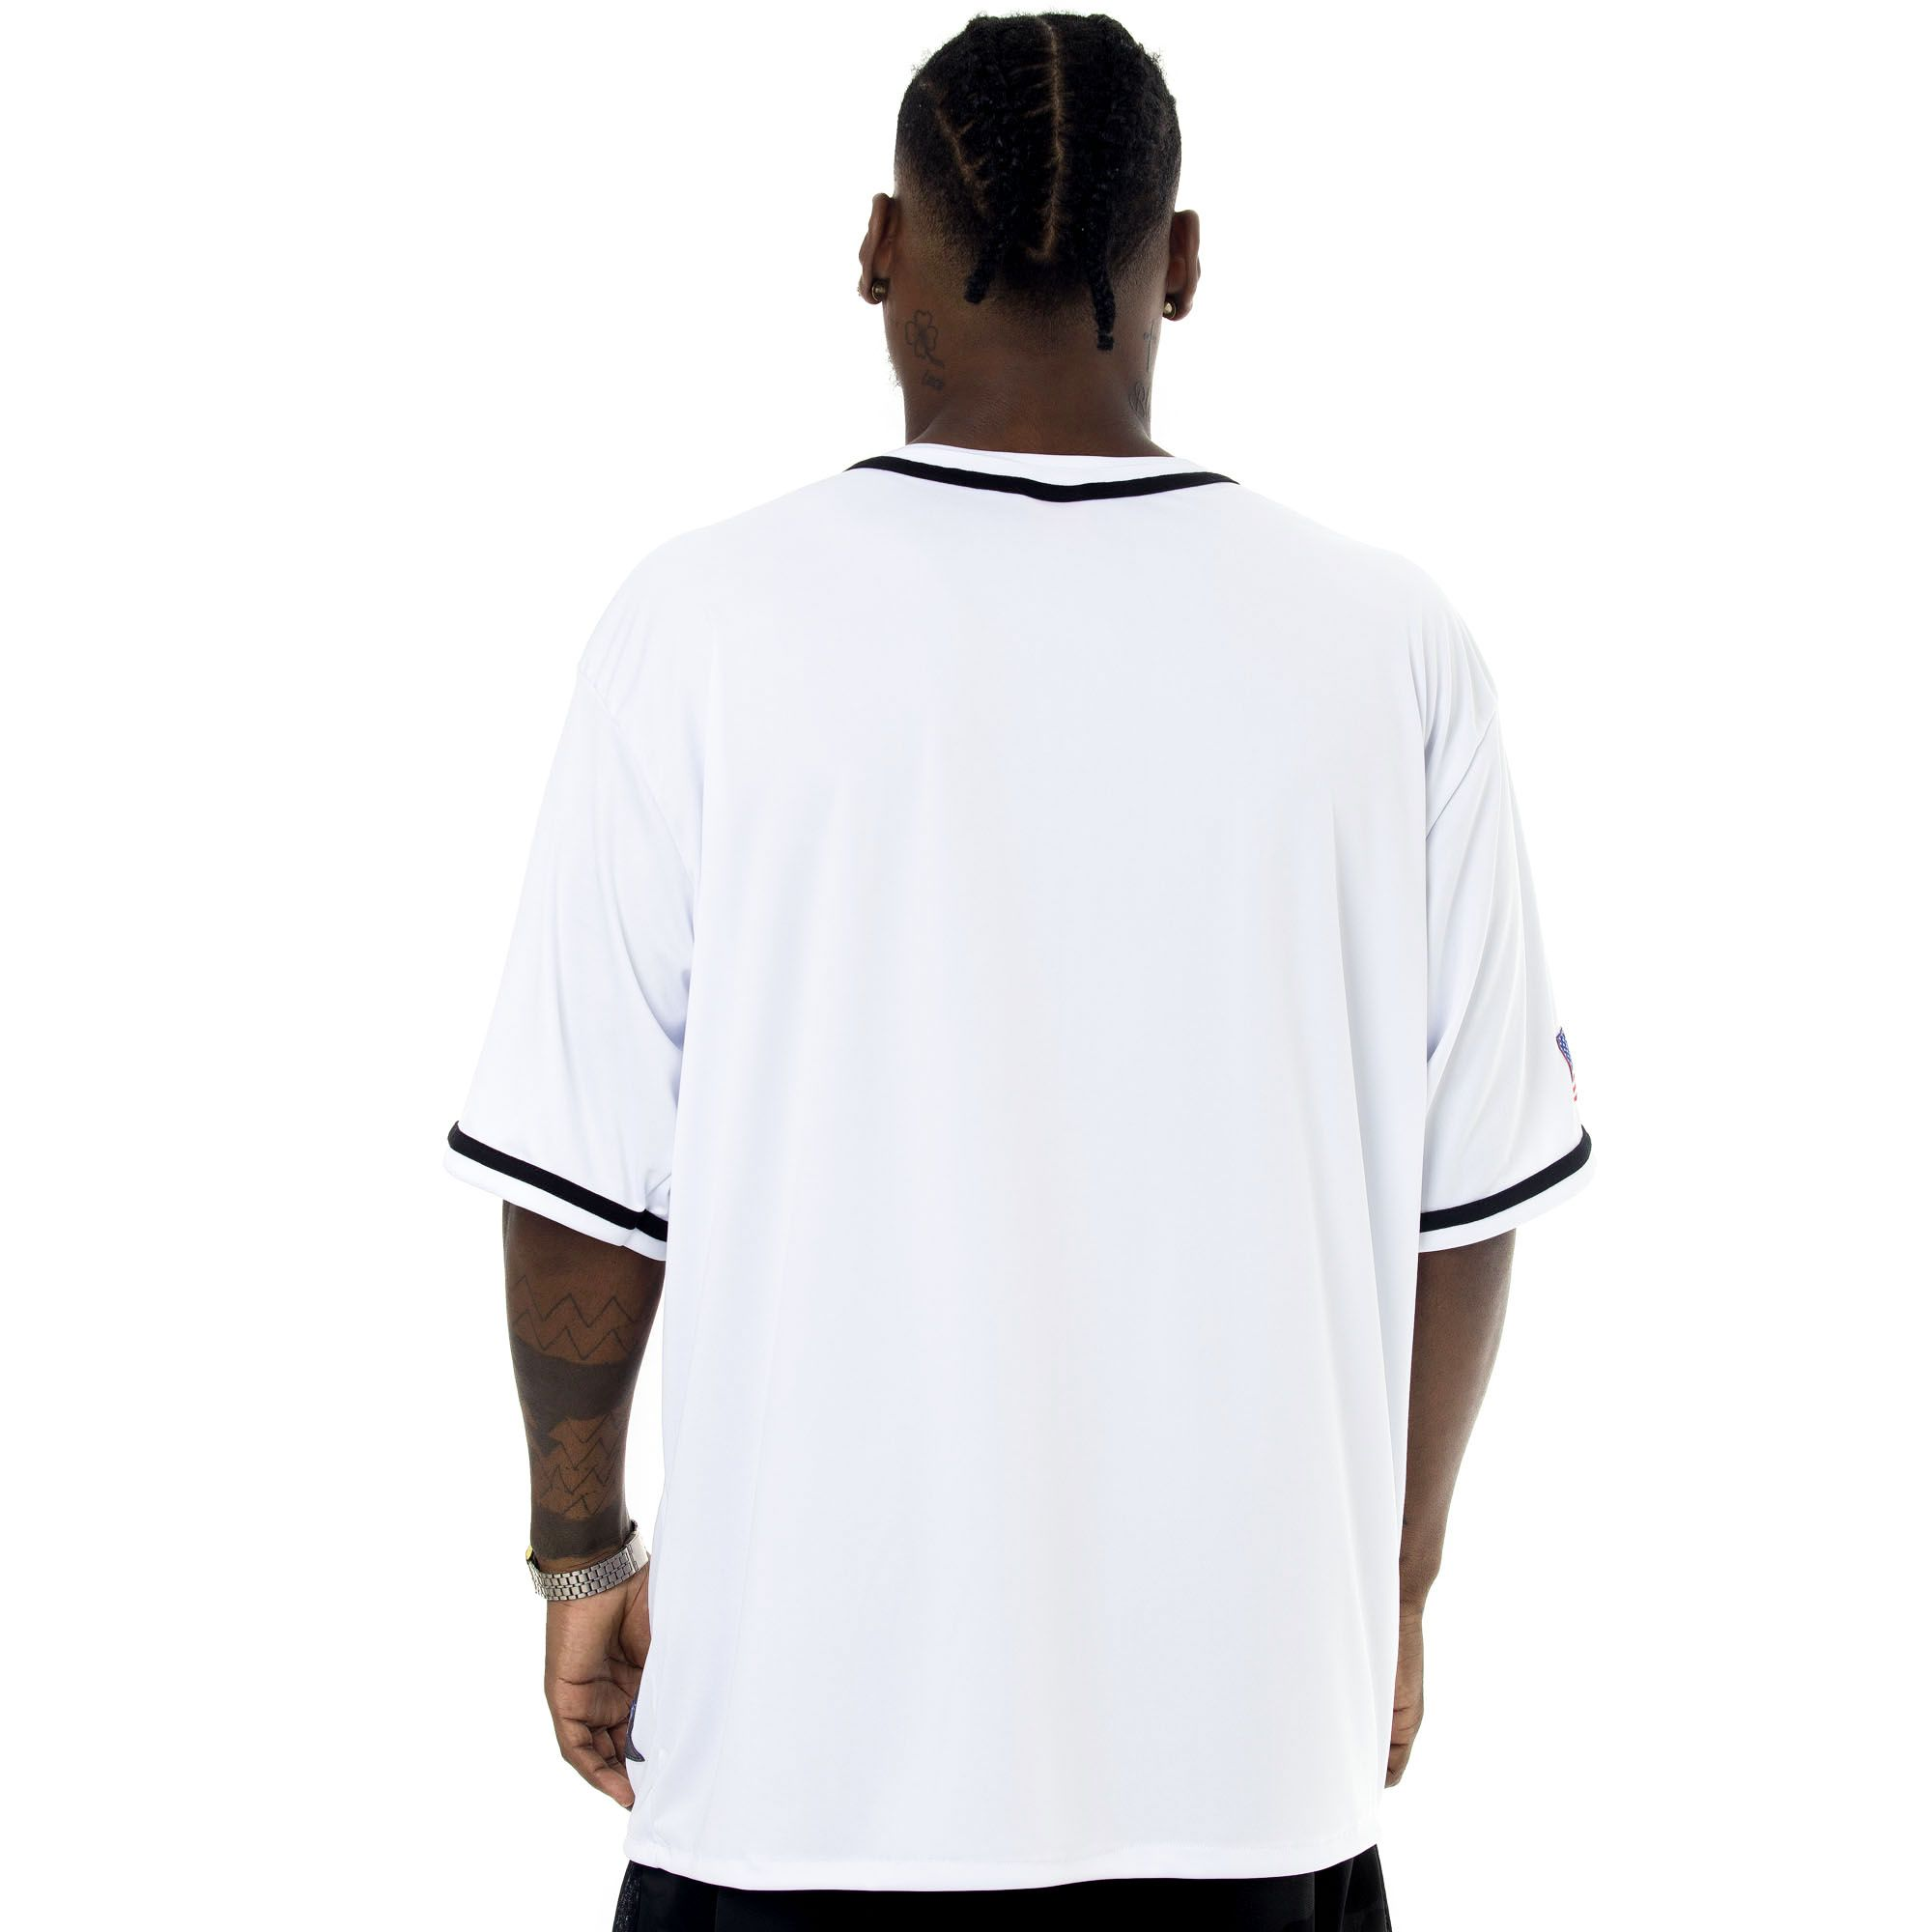 Camisa de Baseball Prison New York City 72 Branca